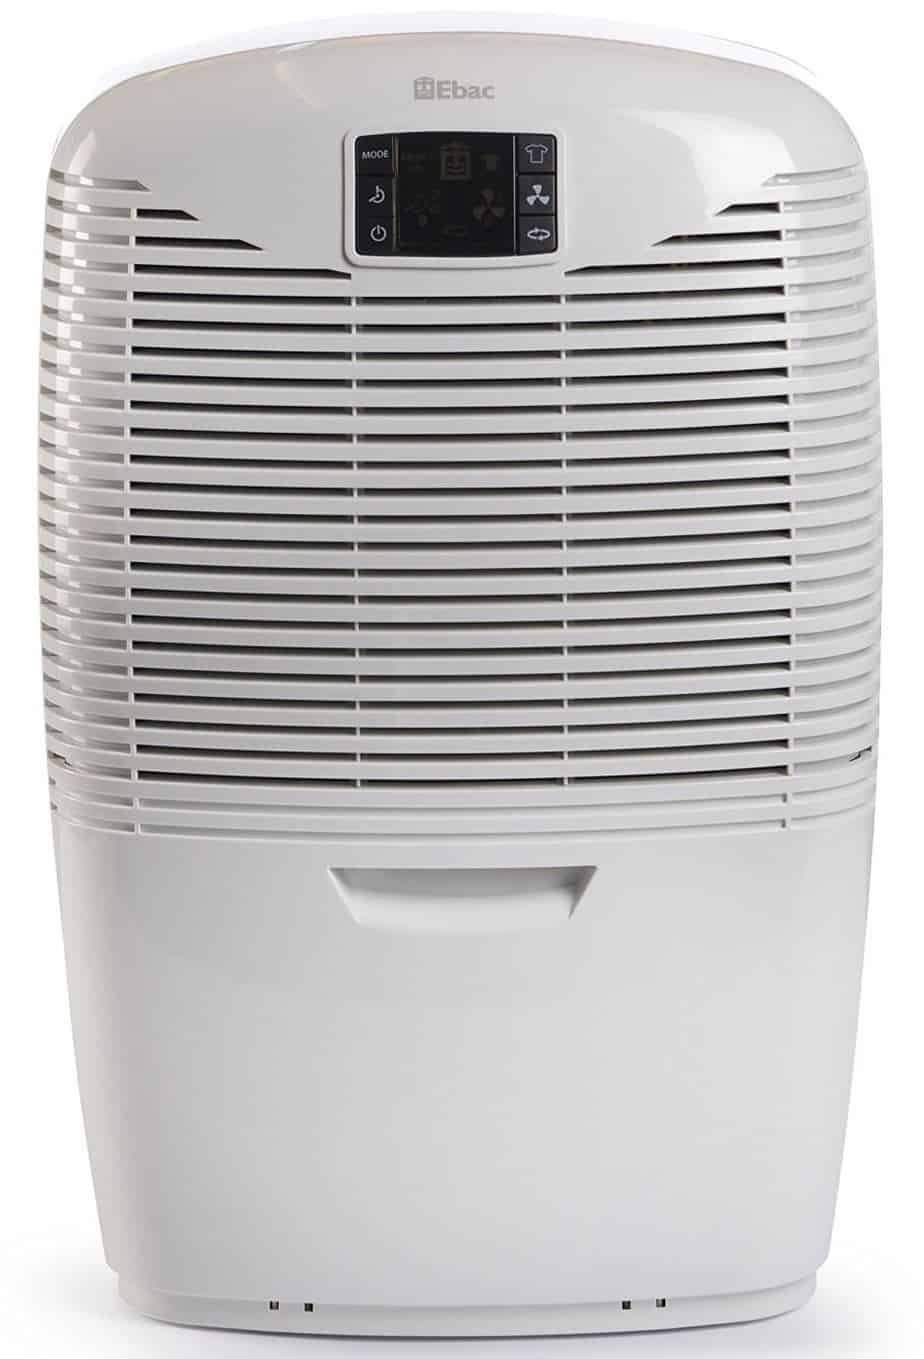 Ebac 3650e Dehumidifier with Smart Control, 18 Litre, White